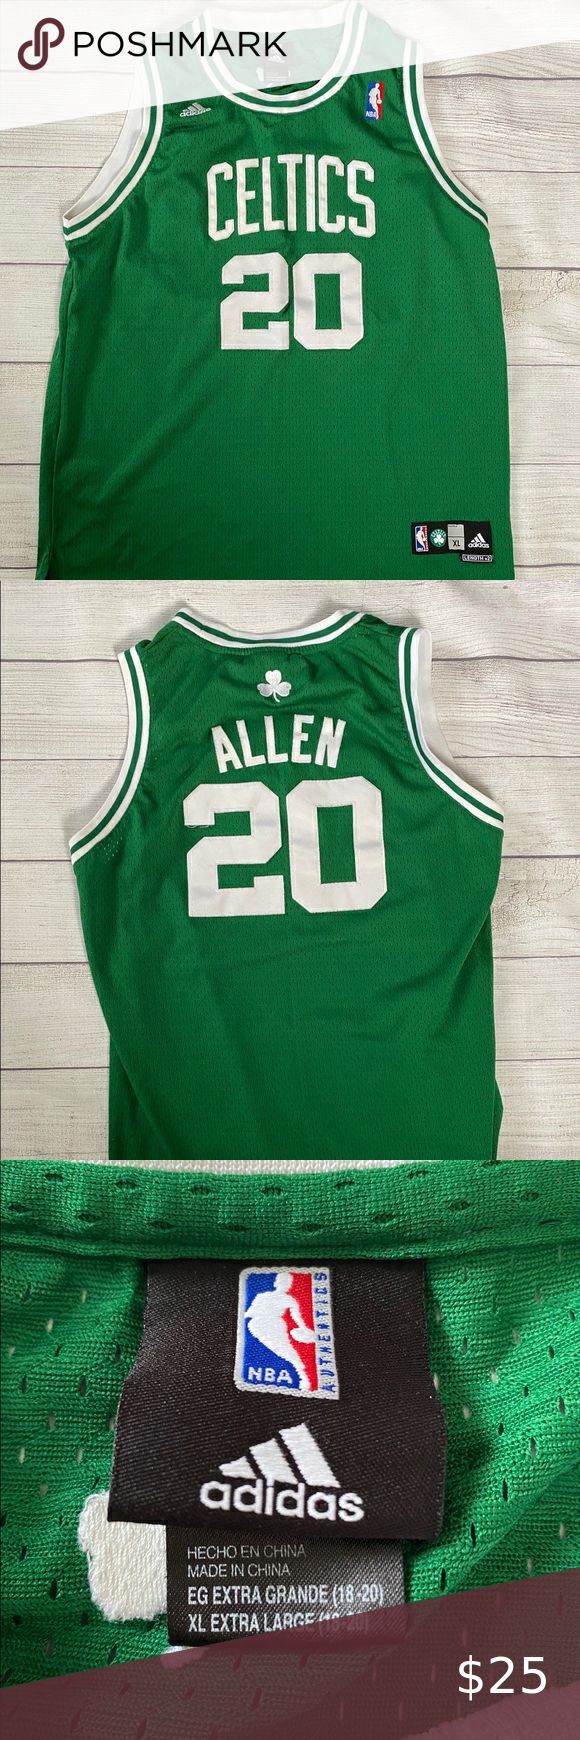 Ray Allen Boston Celtics Jersey Send You The Items In 2 Work Days All Items Fit True To Official Size All Items Boston Celtics Ray Allen Jersey Nba Shirts